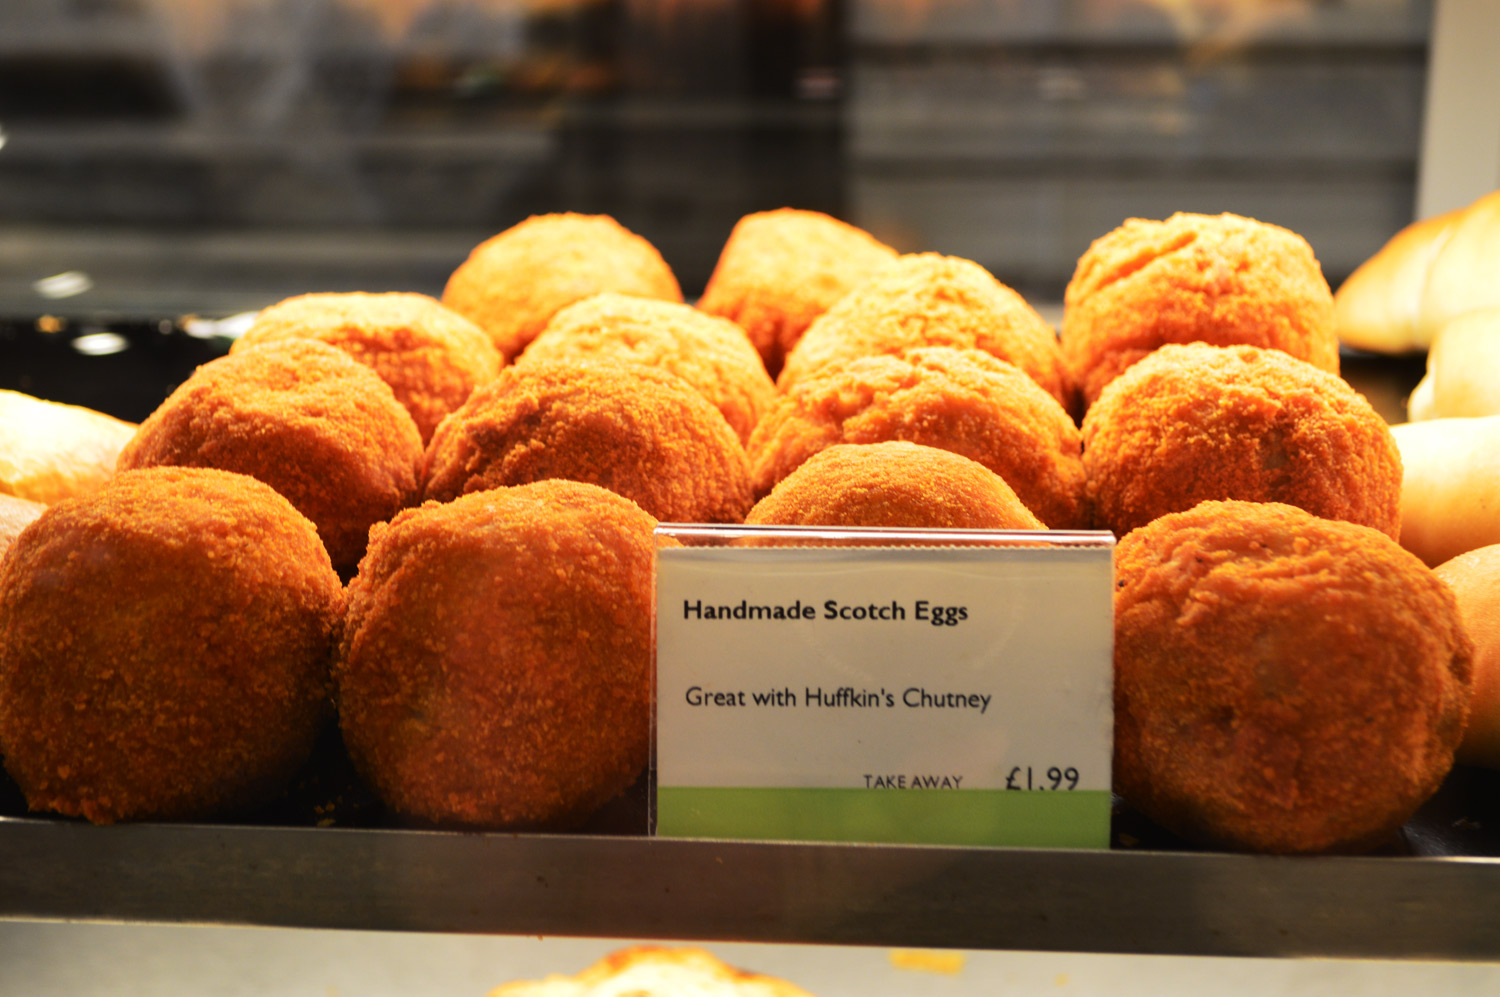 Scotch Eggs during my quick stop in Stow-on-the-Wold in the Cotswolds